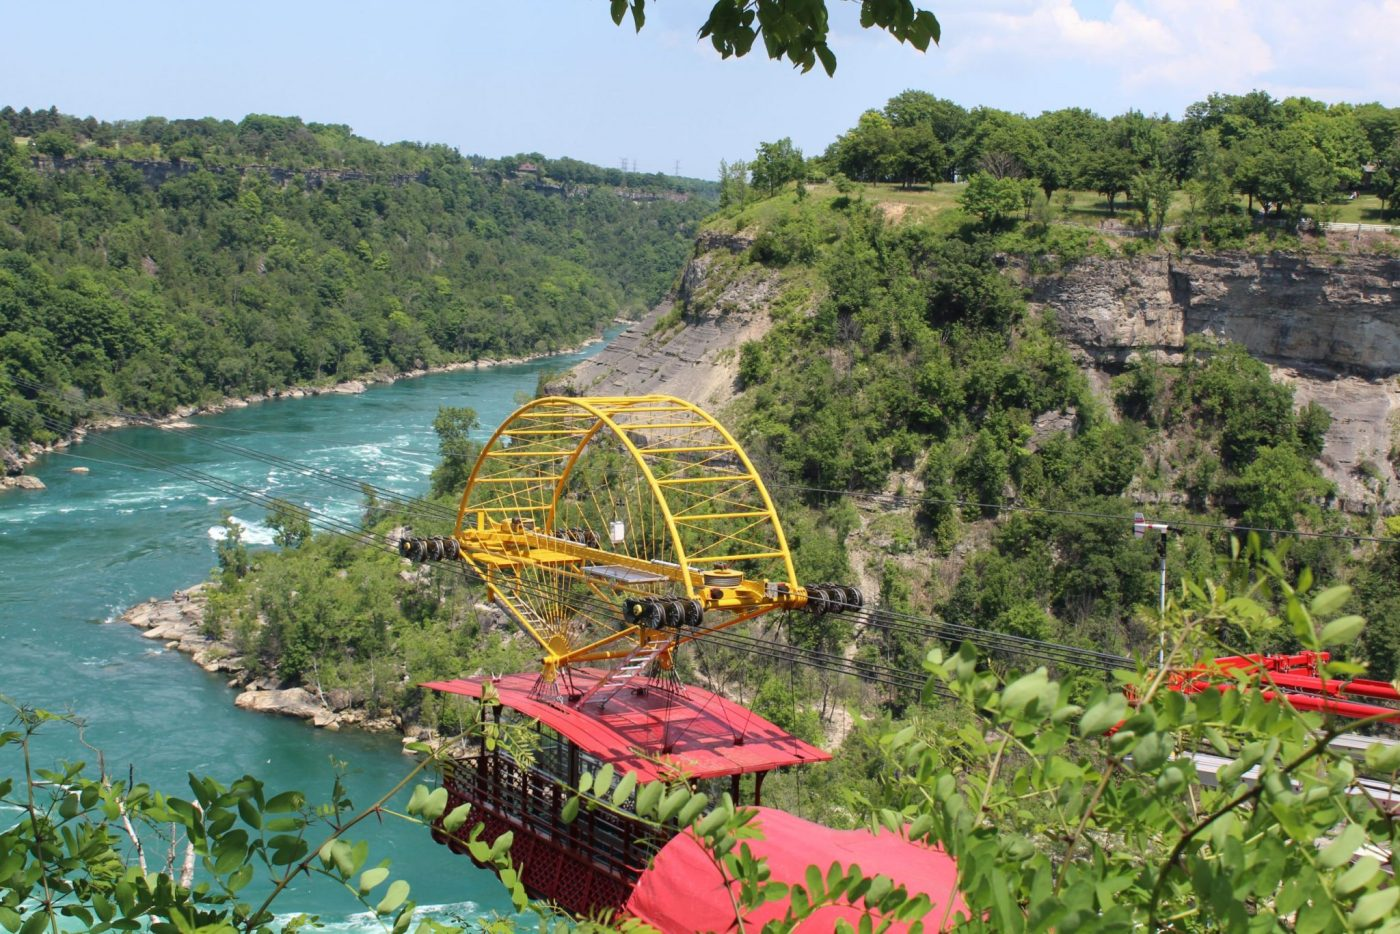 A photo of the whirlpool aerocar above the Niagara River.